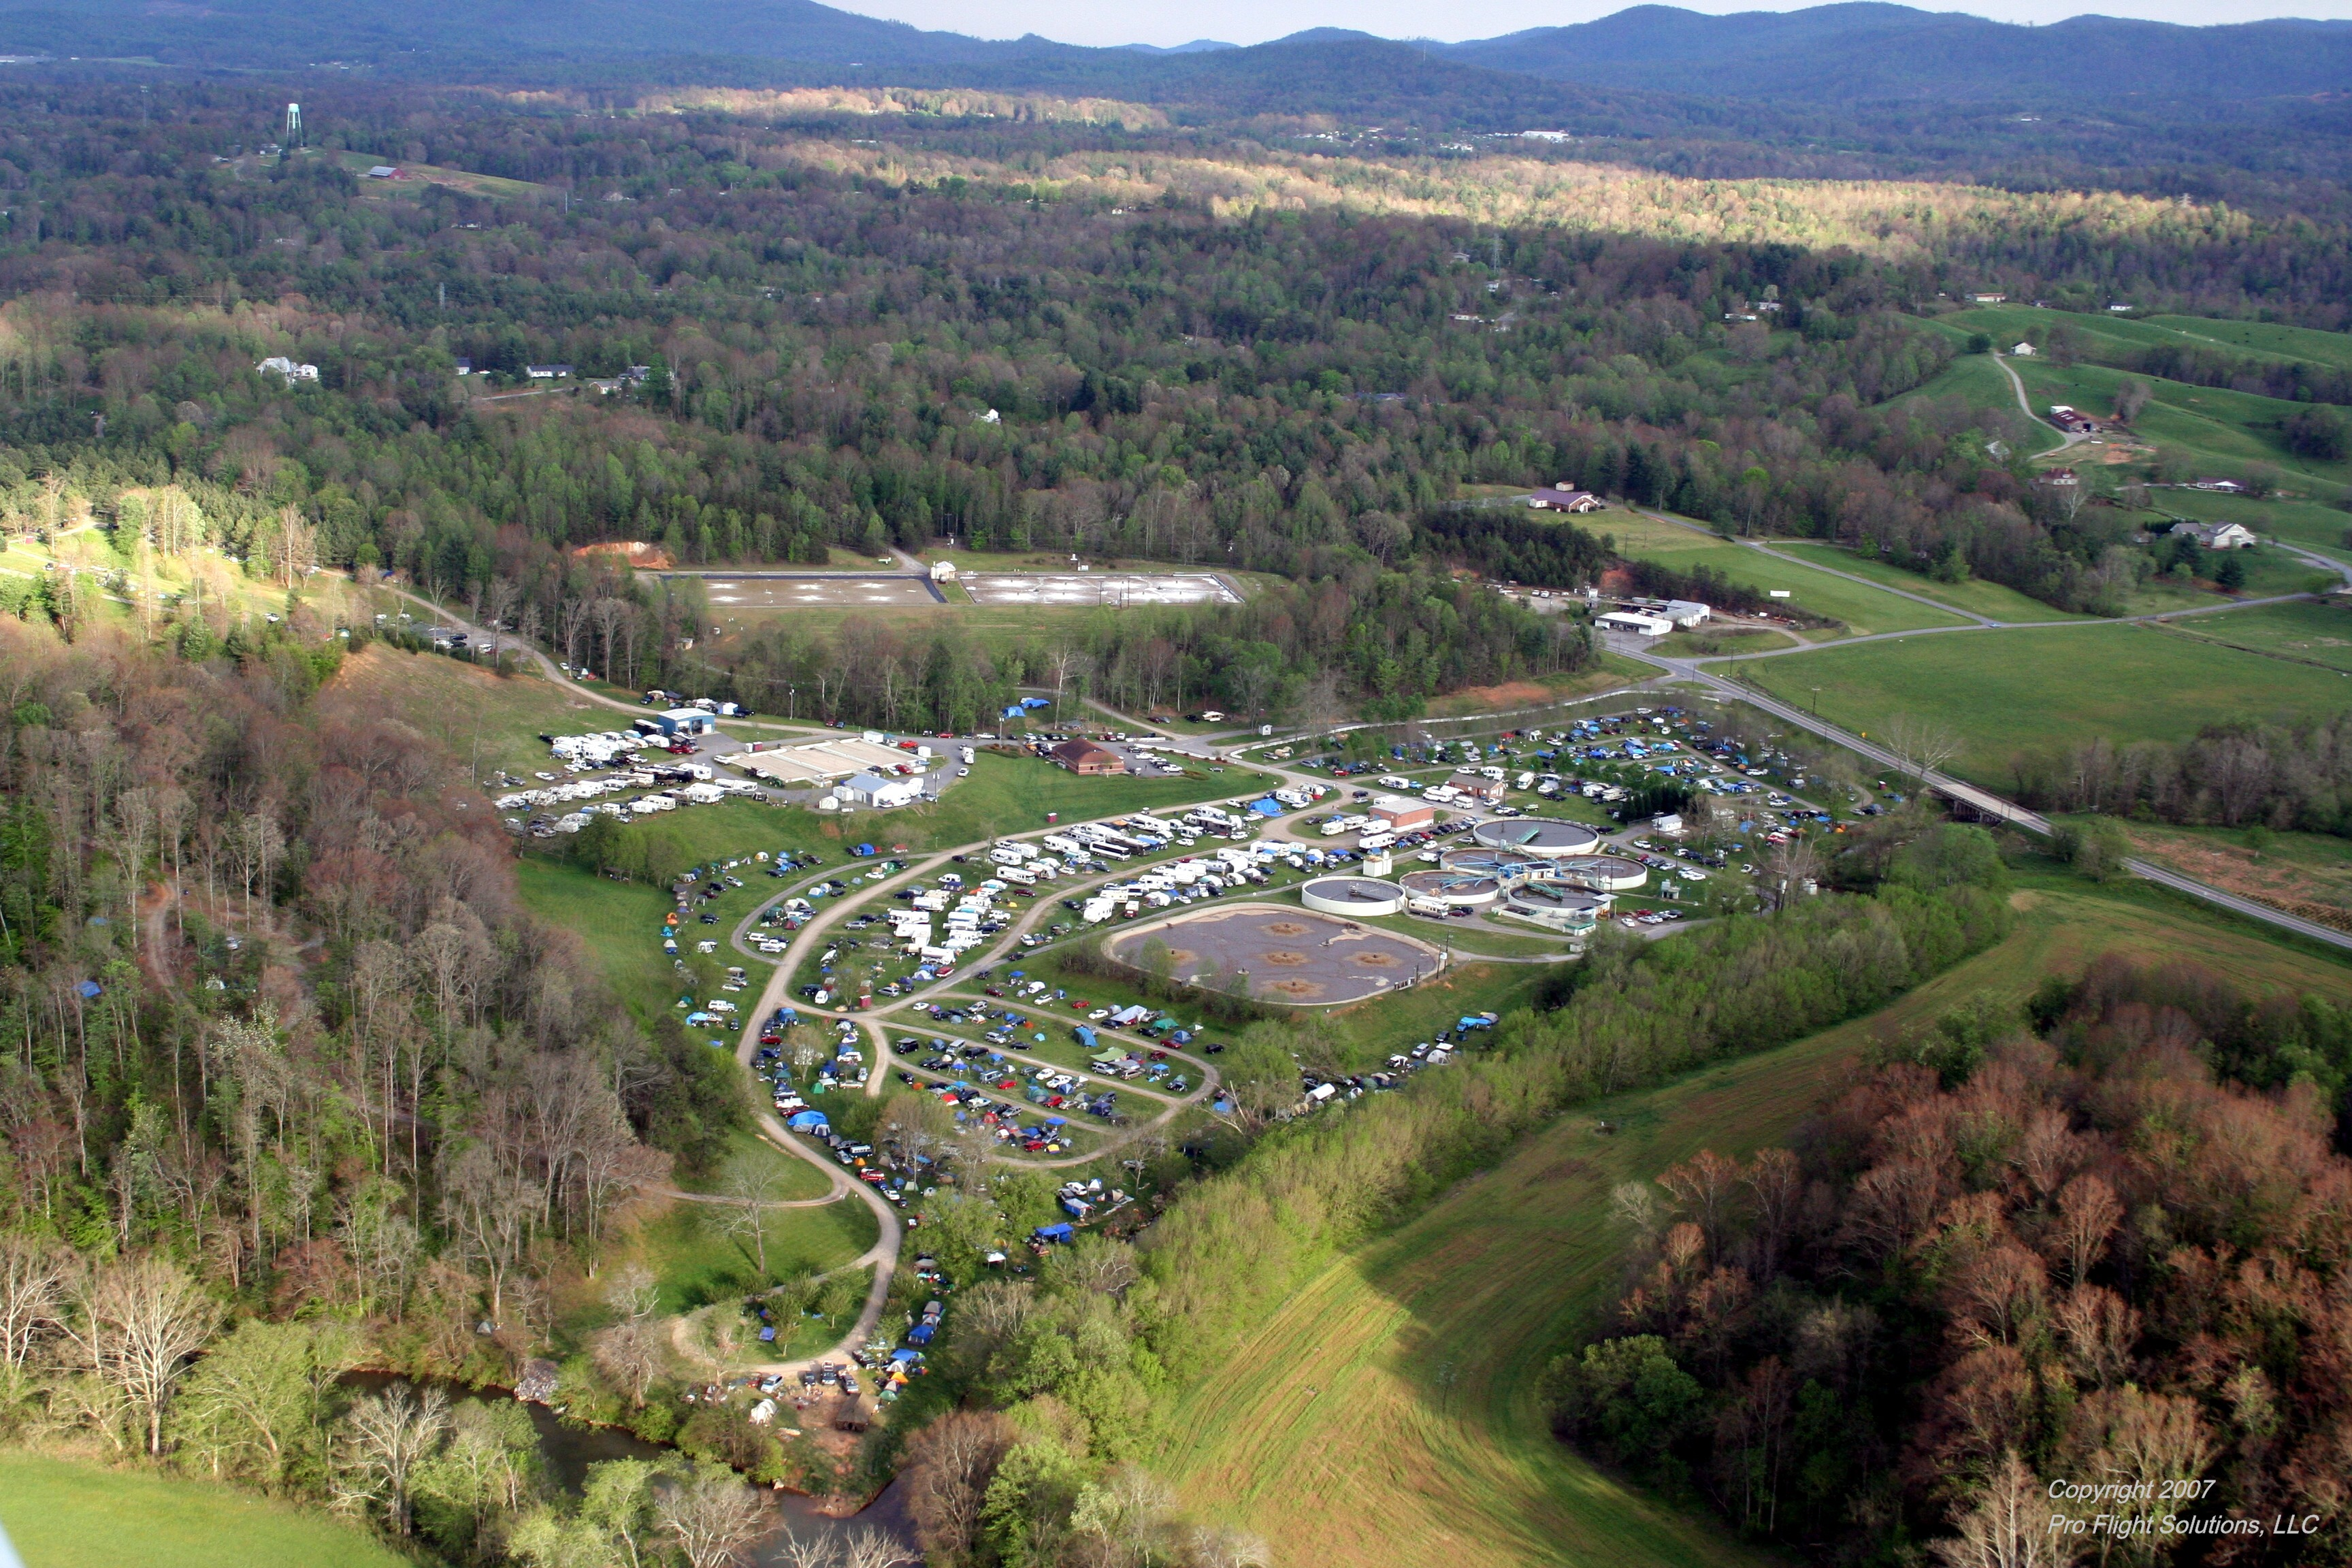 Sewerfest Camping - Image by ProFlight Solutions LLC